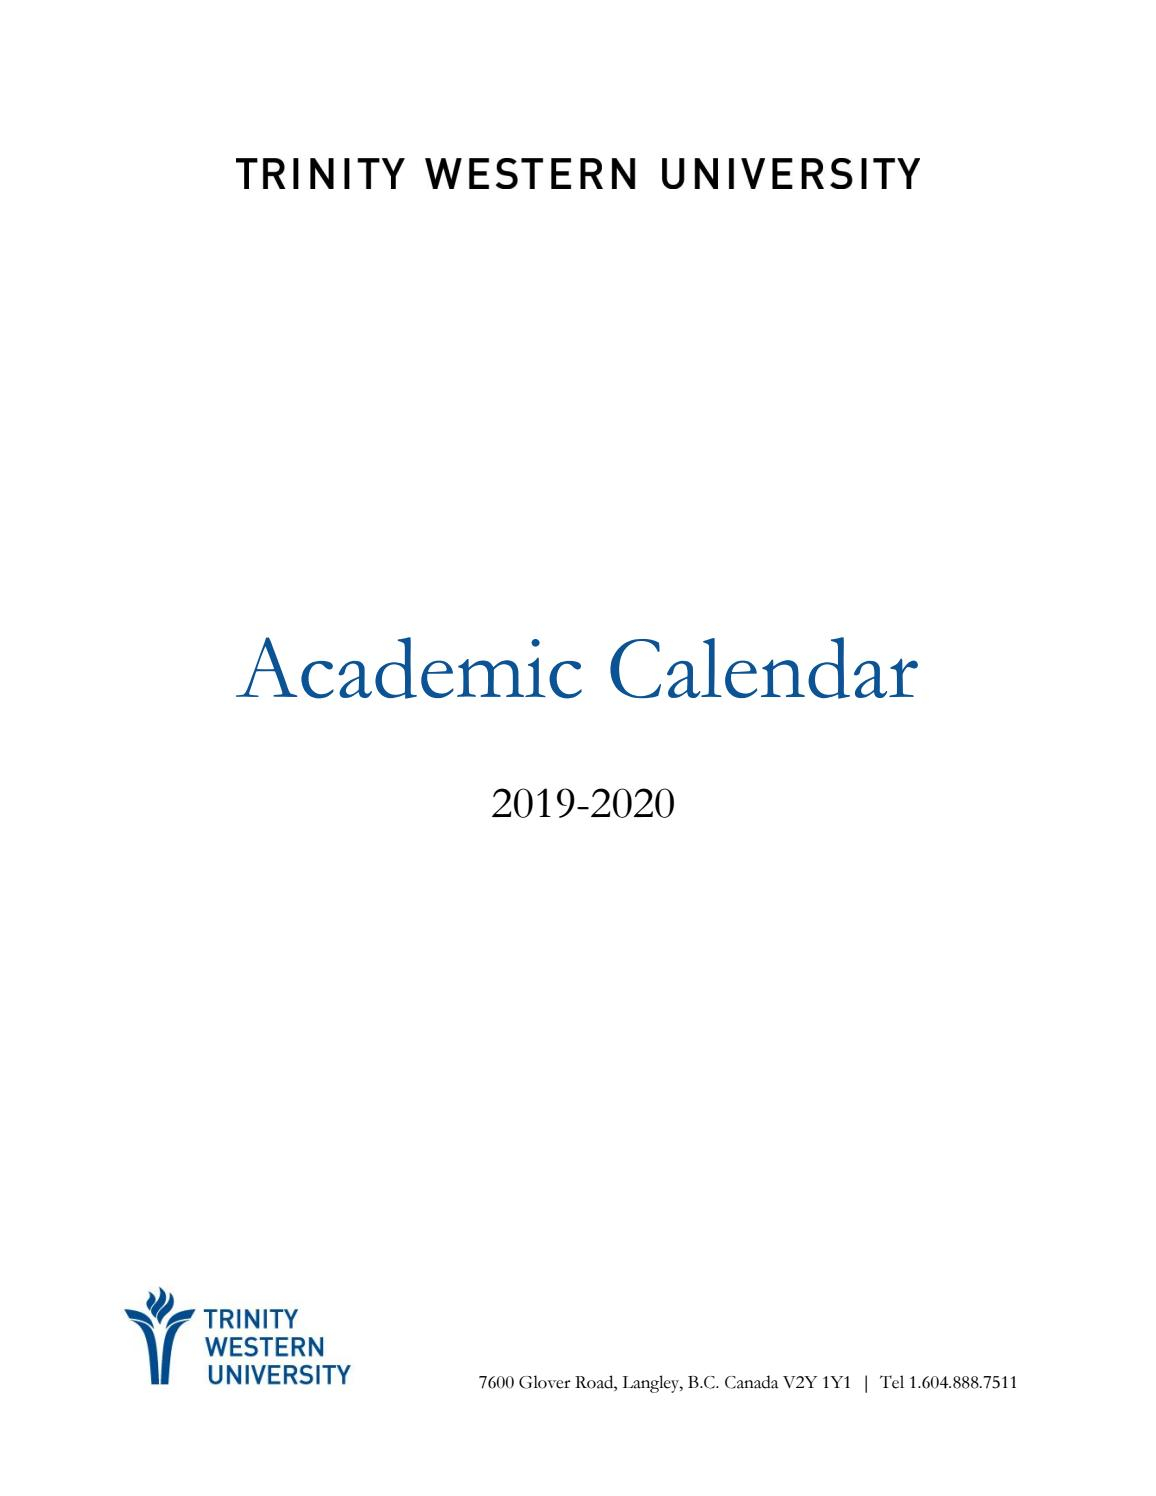 2019-20 Academic Calendartwu - Issuu regarding St Charles Commnity College Calendar'